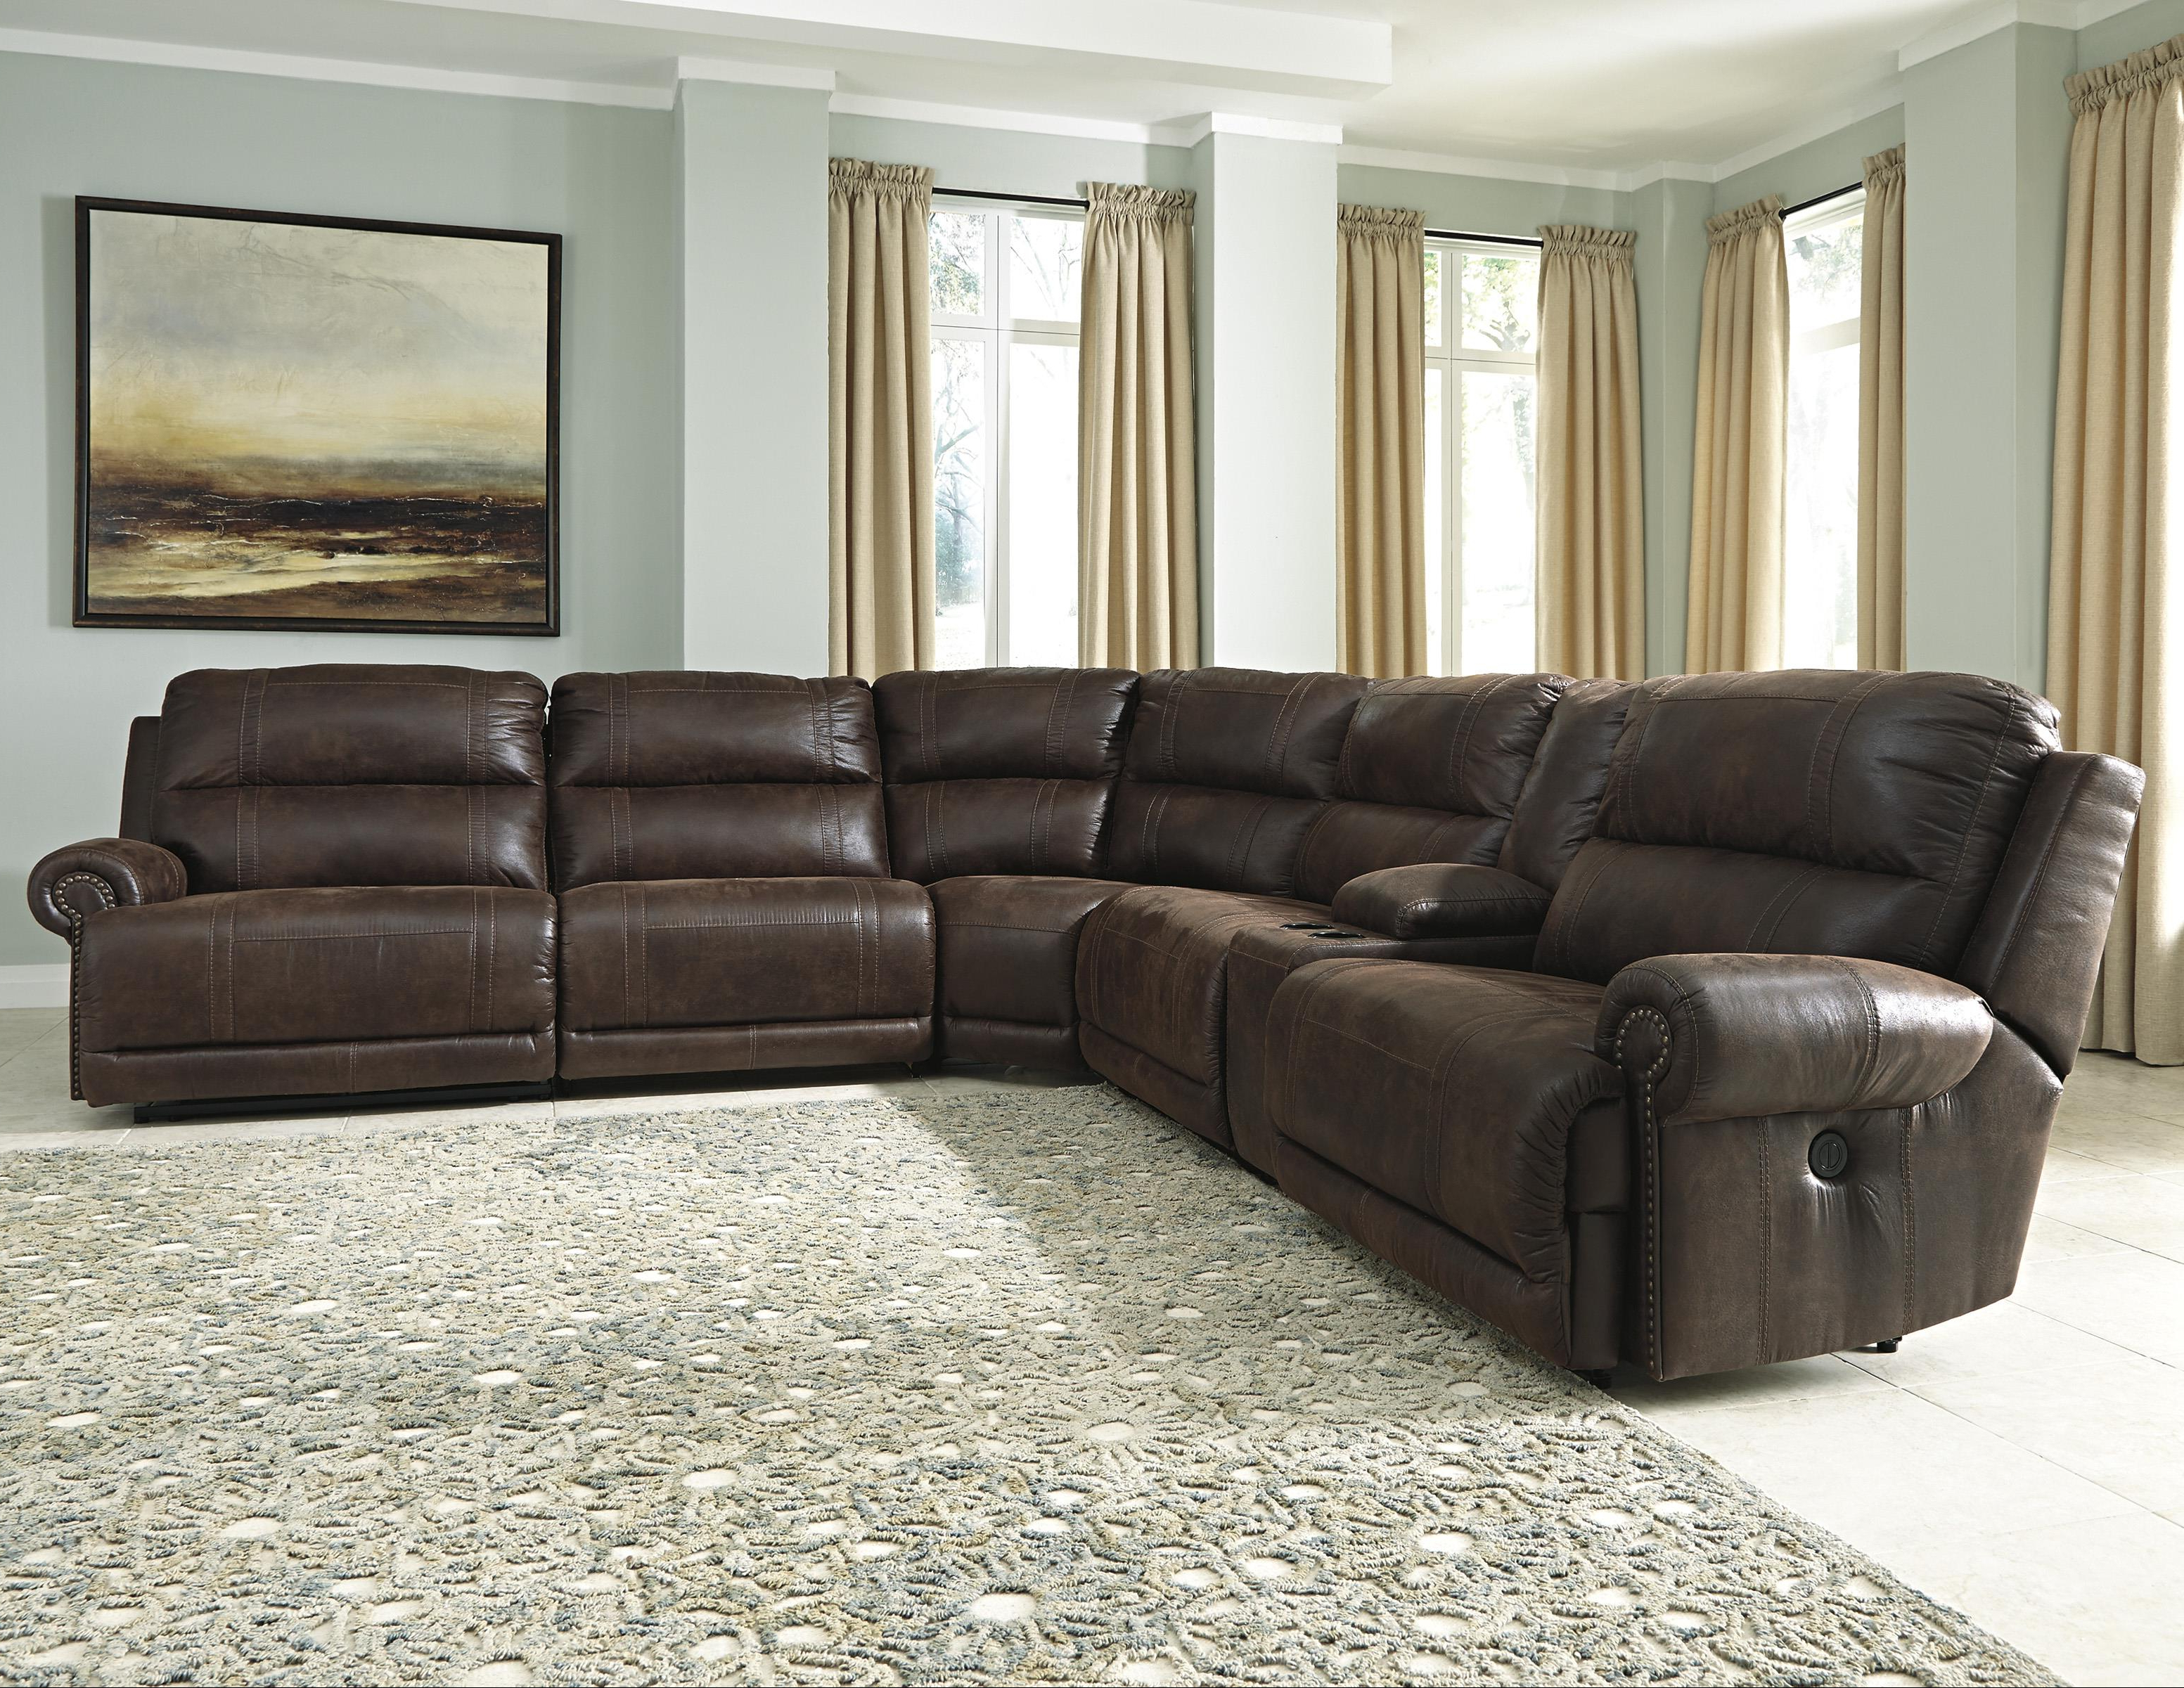 Best And Newest Jackson 6 Piece Power Reclining Sectionals Pertaining To Signature Designashley Luttrell 6 Piece Power Reclining (View 1 of 20)